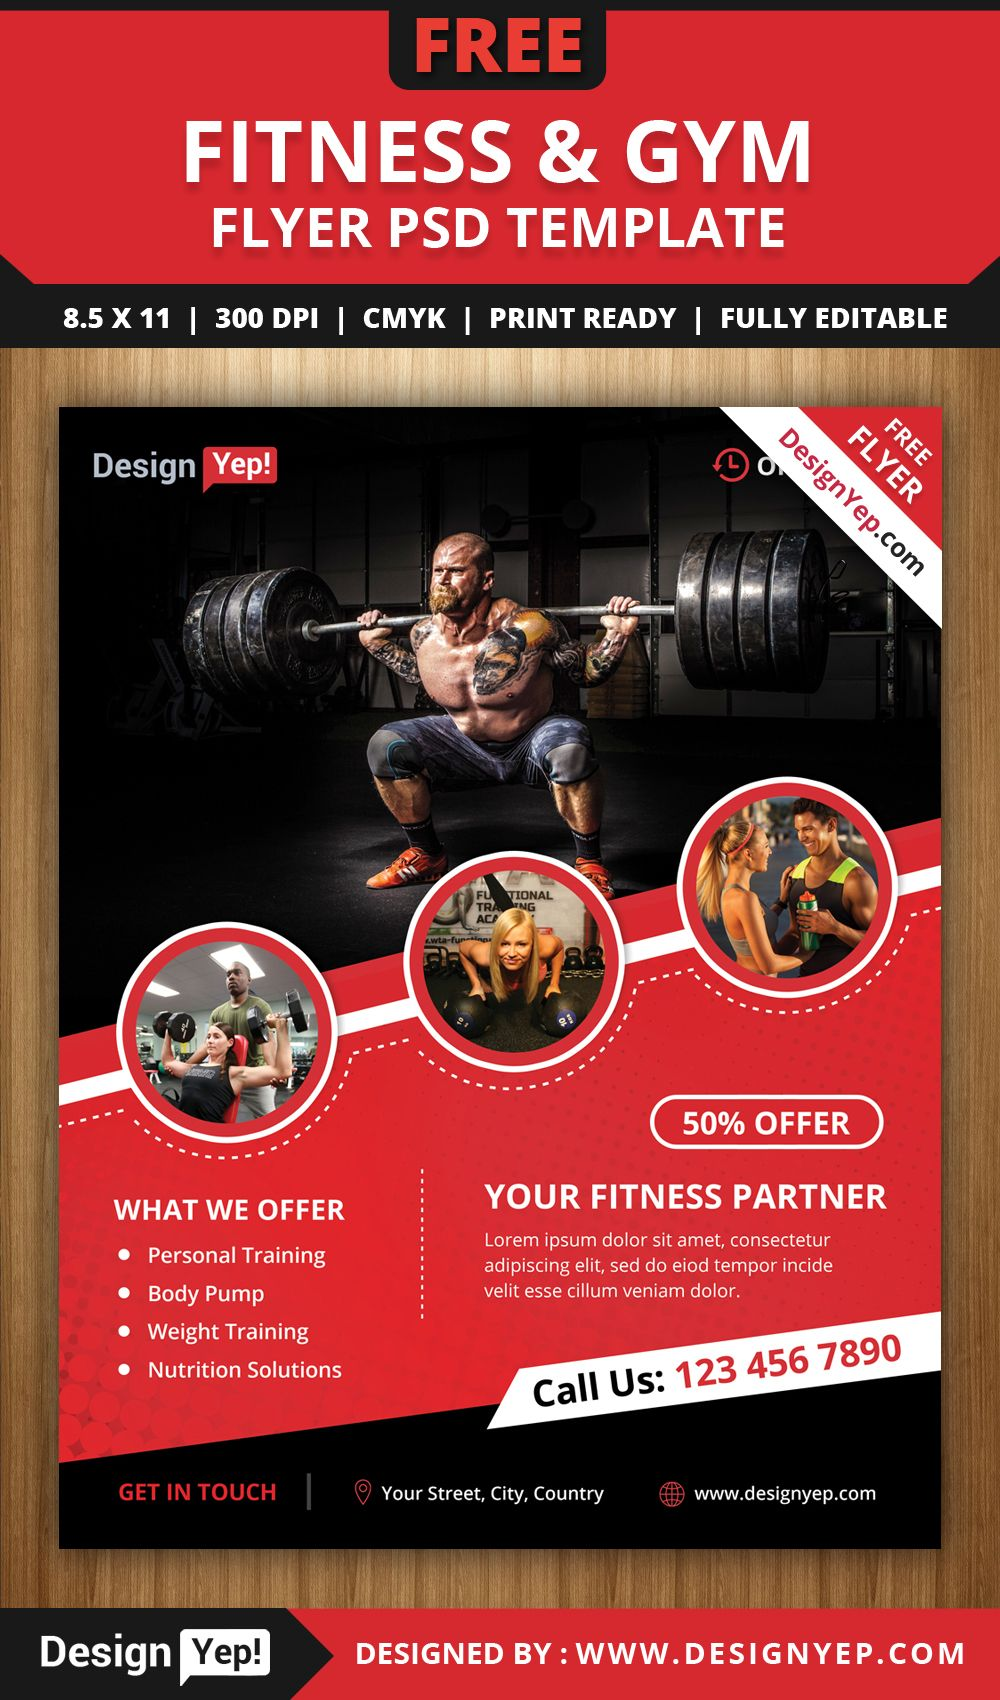 Free Fitness U0026 Gym Flyer PSD Template  Fitness Templates Free